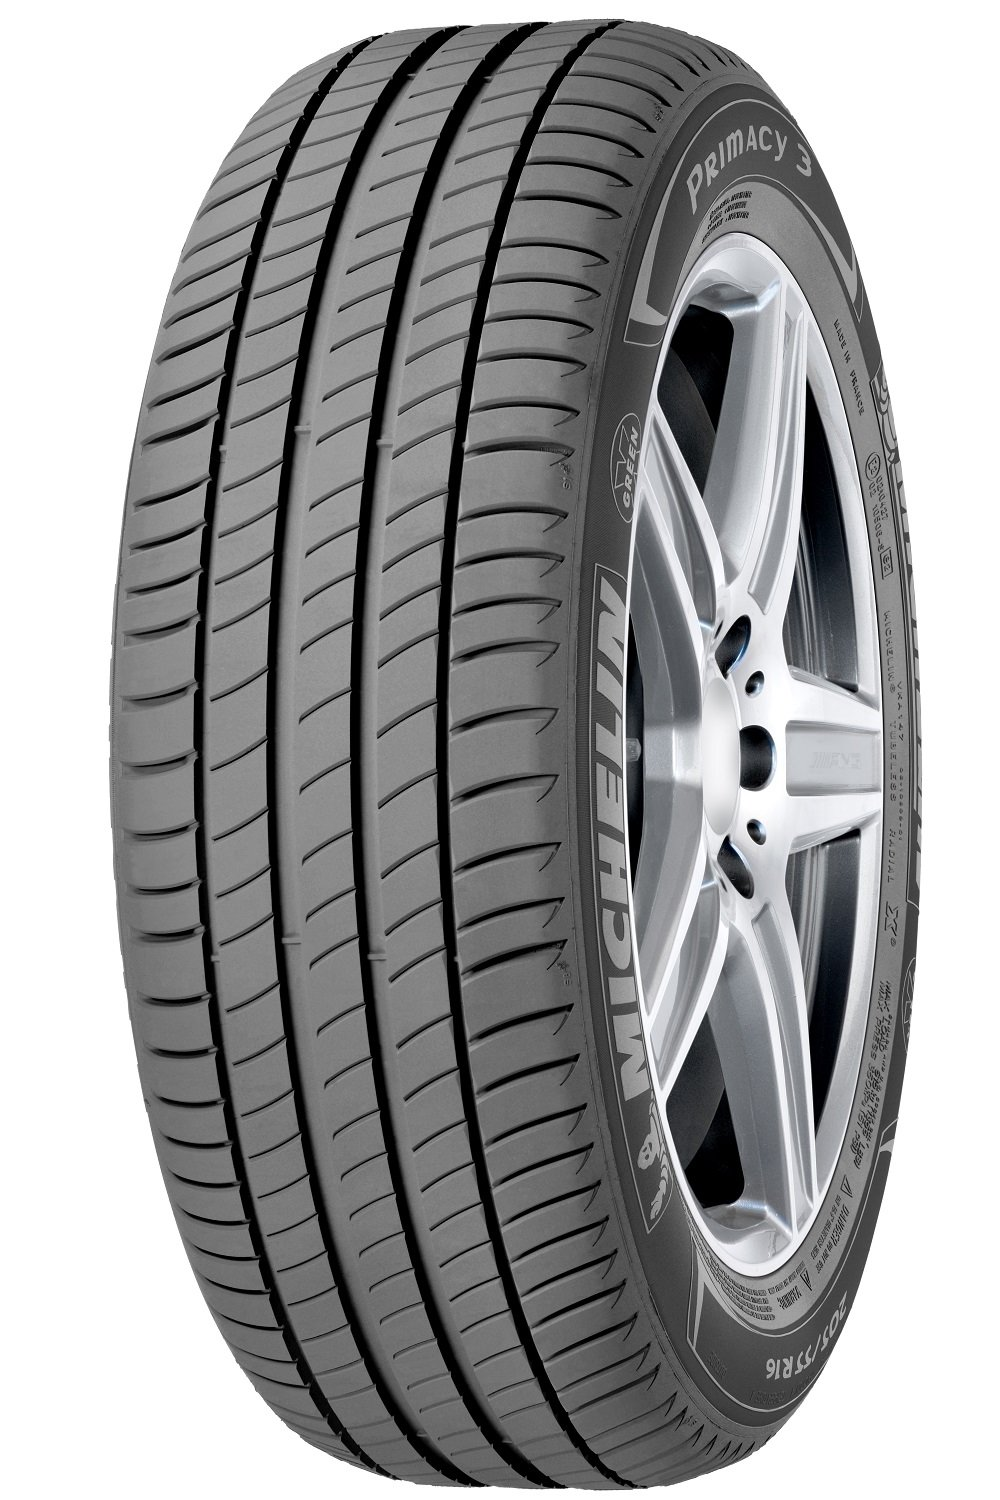 MICHELIN PRIMACY 3 245/45R19